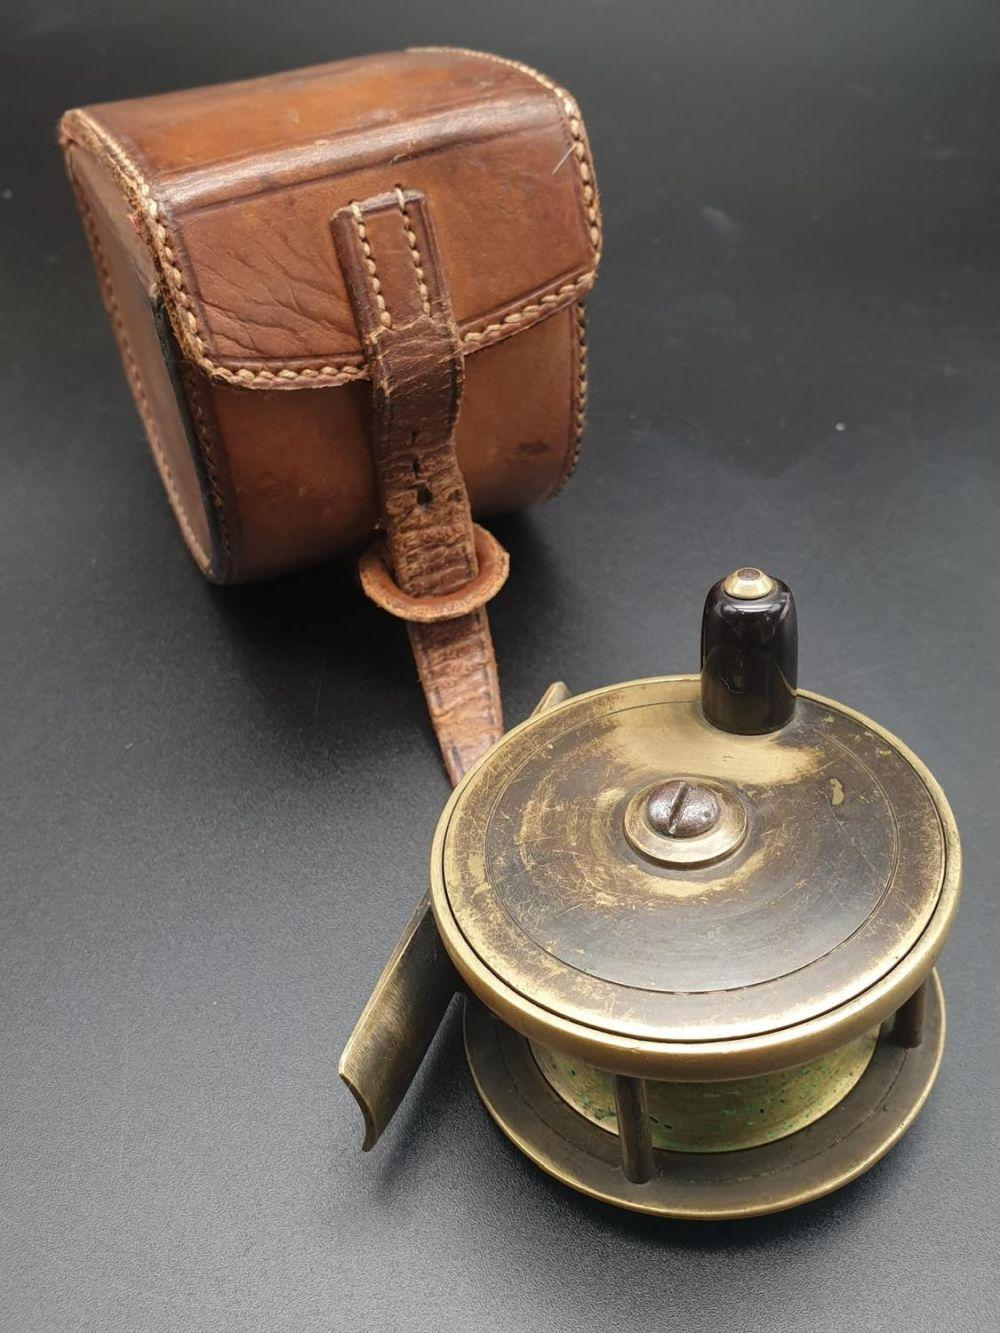 A CHAS FARLOW 2.5 INCH BRASS PLATE WIND REEL , SCRIPT ENGRAVED ON BACK PLATE IN GOOD CONDITION AND IN ITS ORIGINAL FARLOW'S LEATHER CASE.